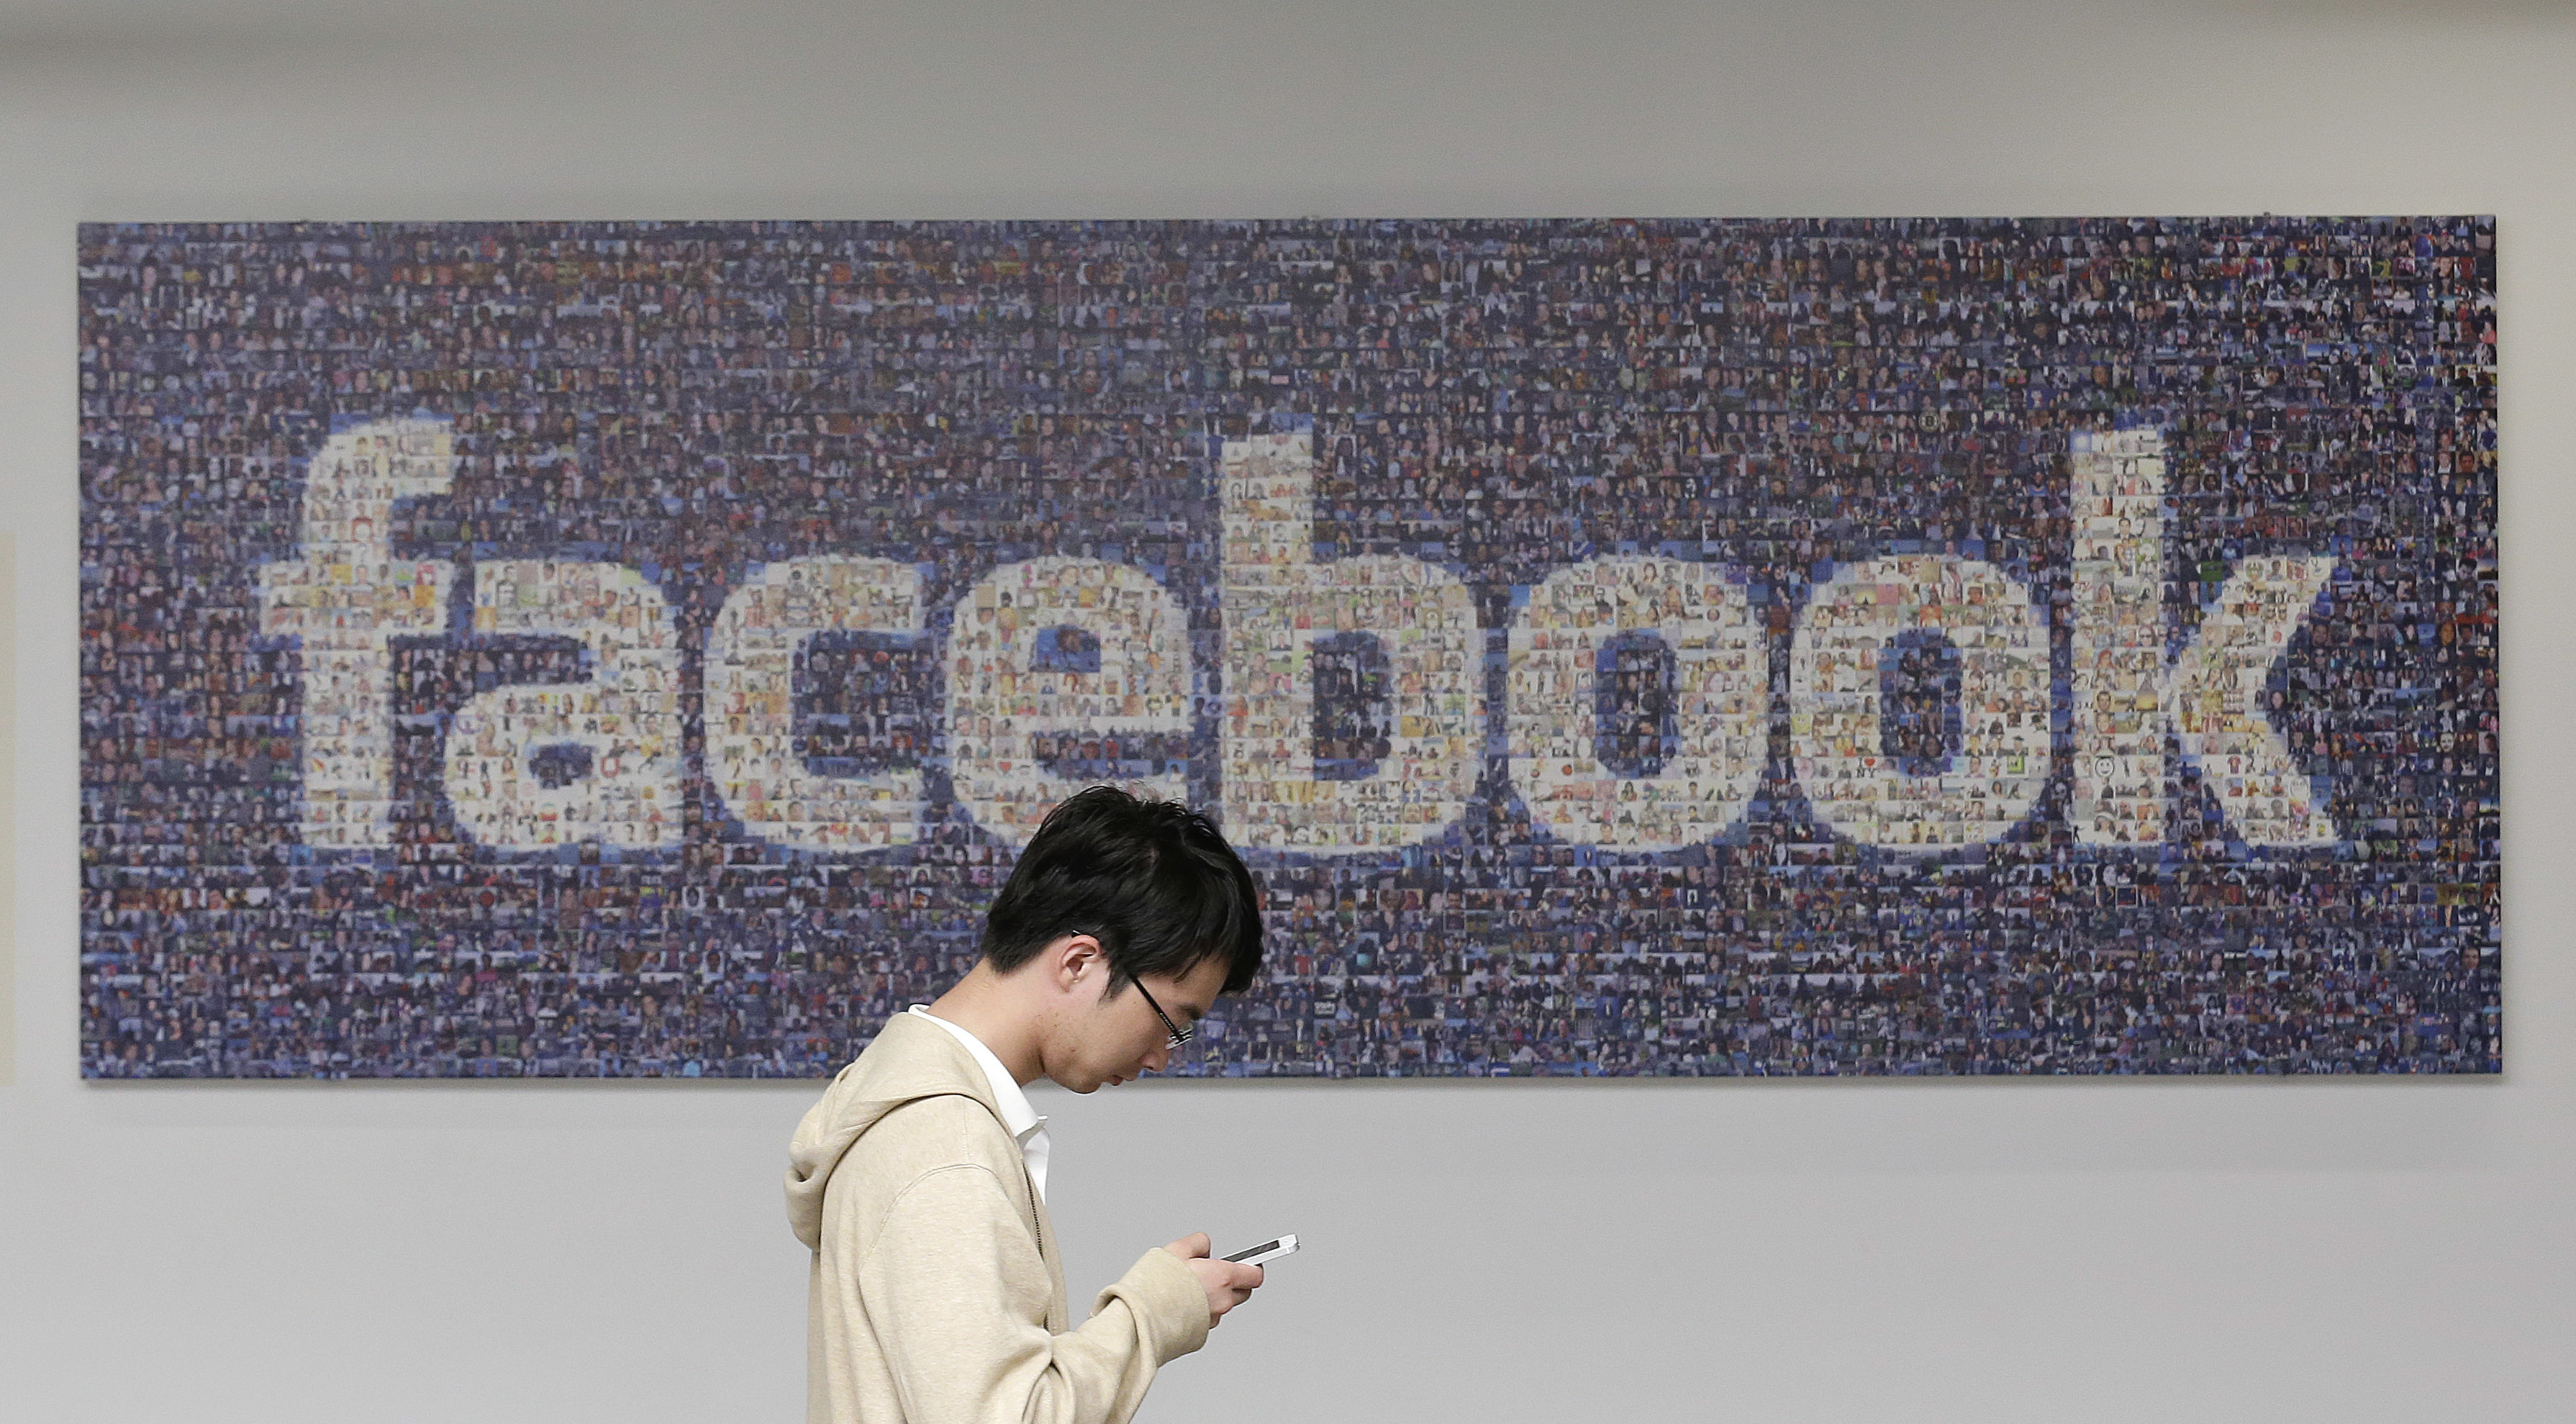 Facebook announced Thursday, April 6, 2017, it is launching a tool to help users spot false news articles on the site. (AP Photo/Jeff Chiu, File)